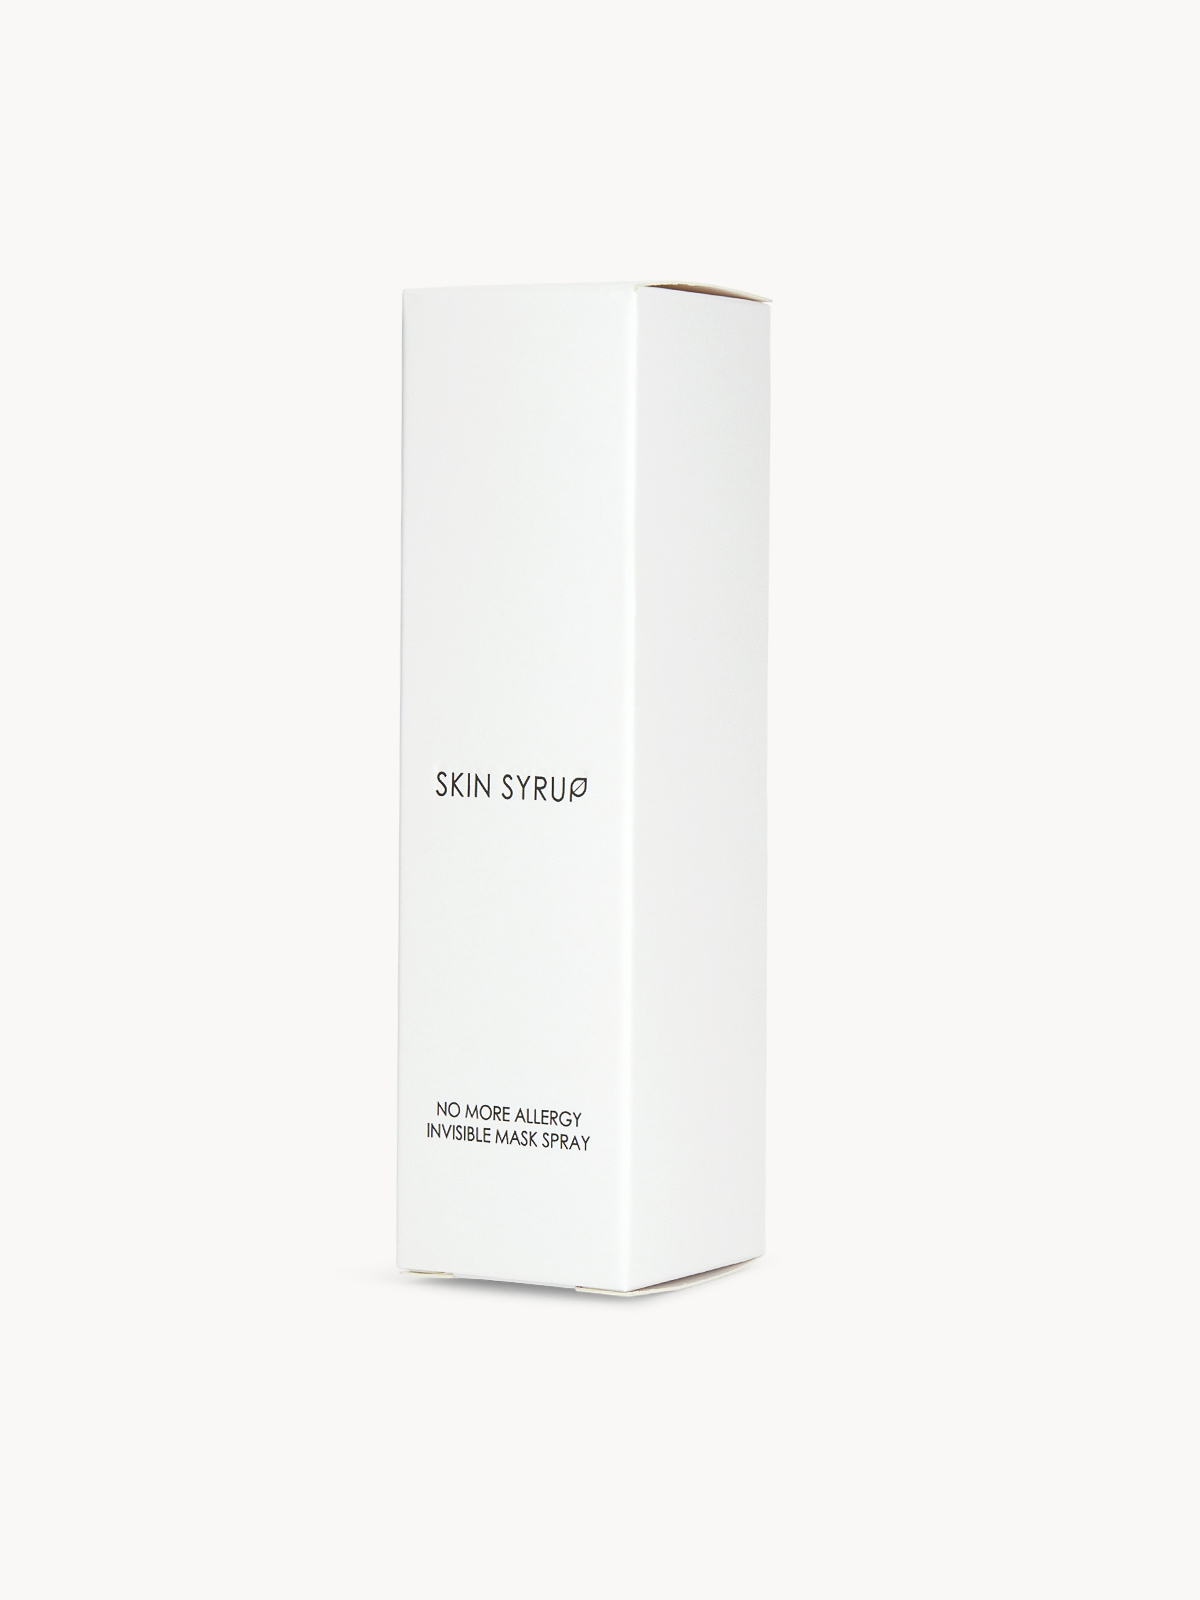 Skin Syrup No More Allergy Invisible Mask Spray